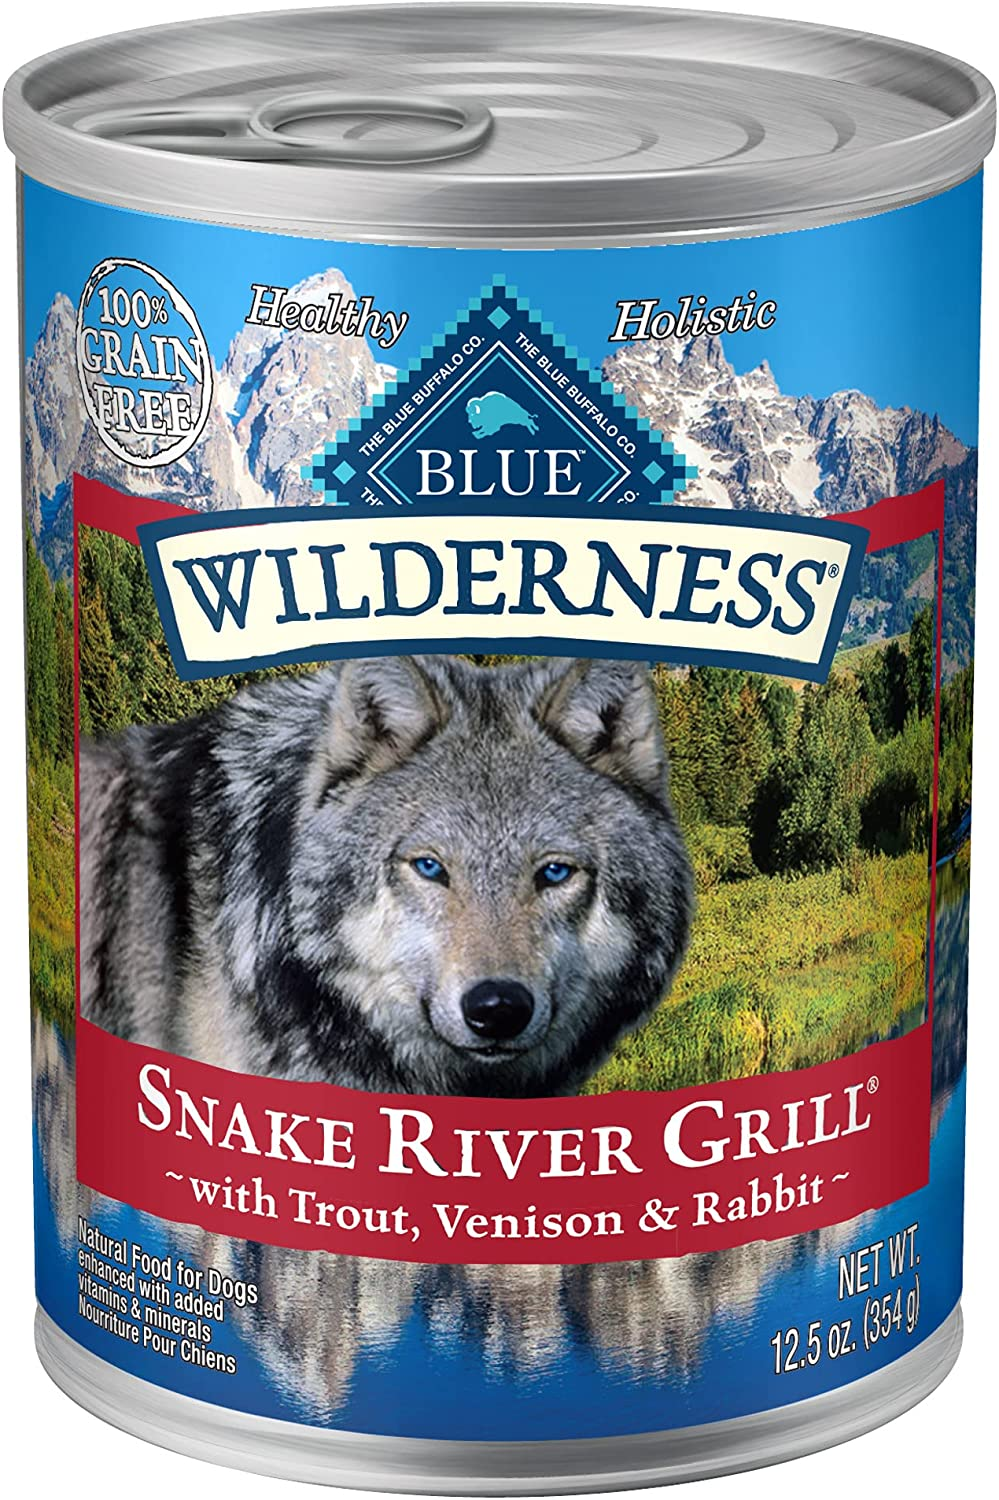 Blue Max 60% OFF Buffalo Wilderness Snake 1 year warranty River High Natural Protein Grill